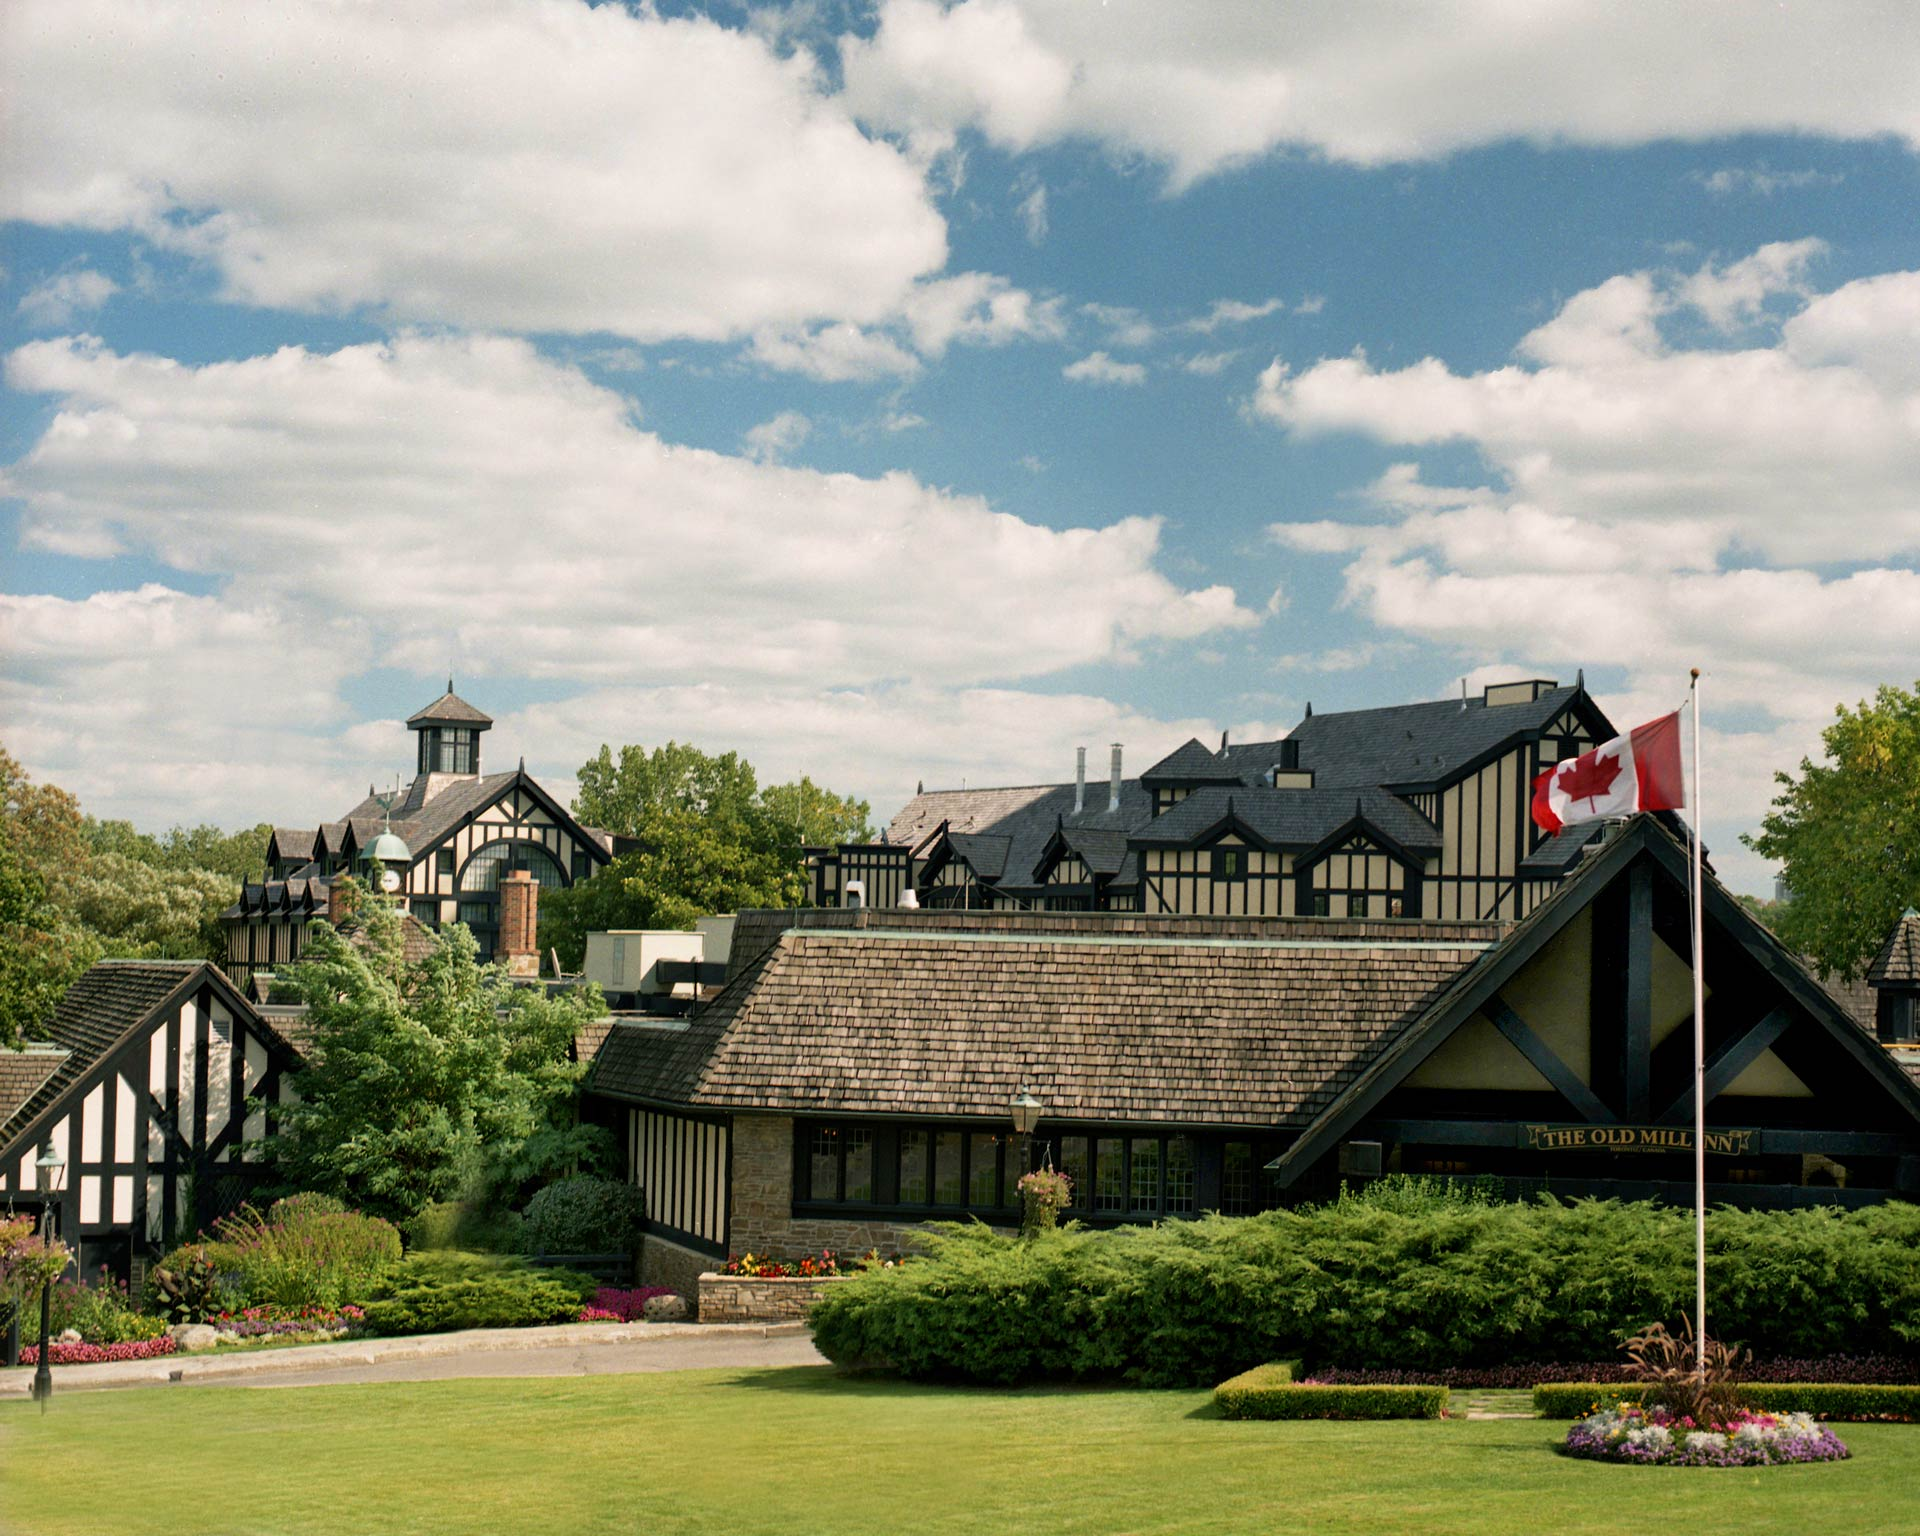 Old Mill Gm >> Contact The Old Mill Toronto Beautiful Boutique Hotel In